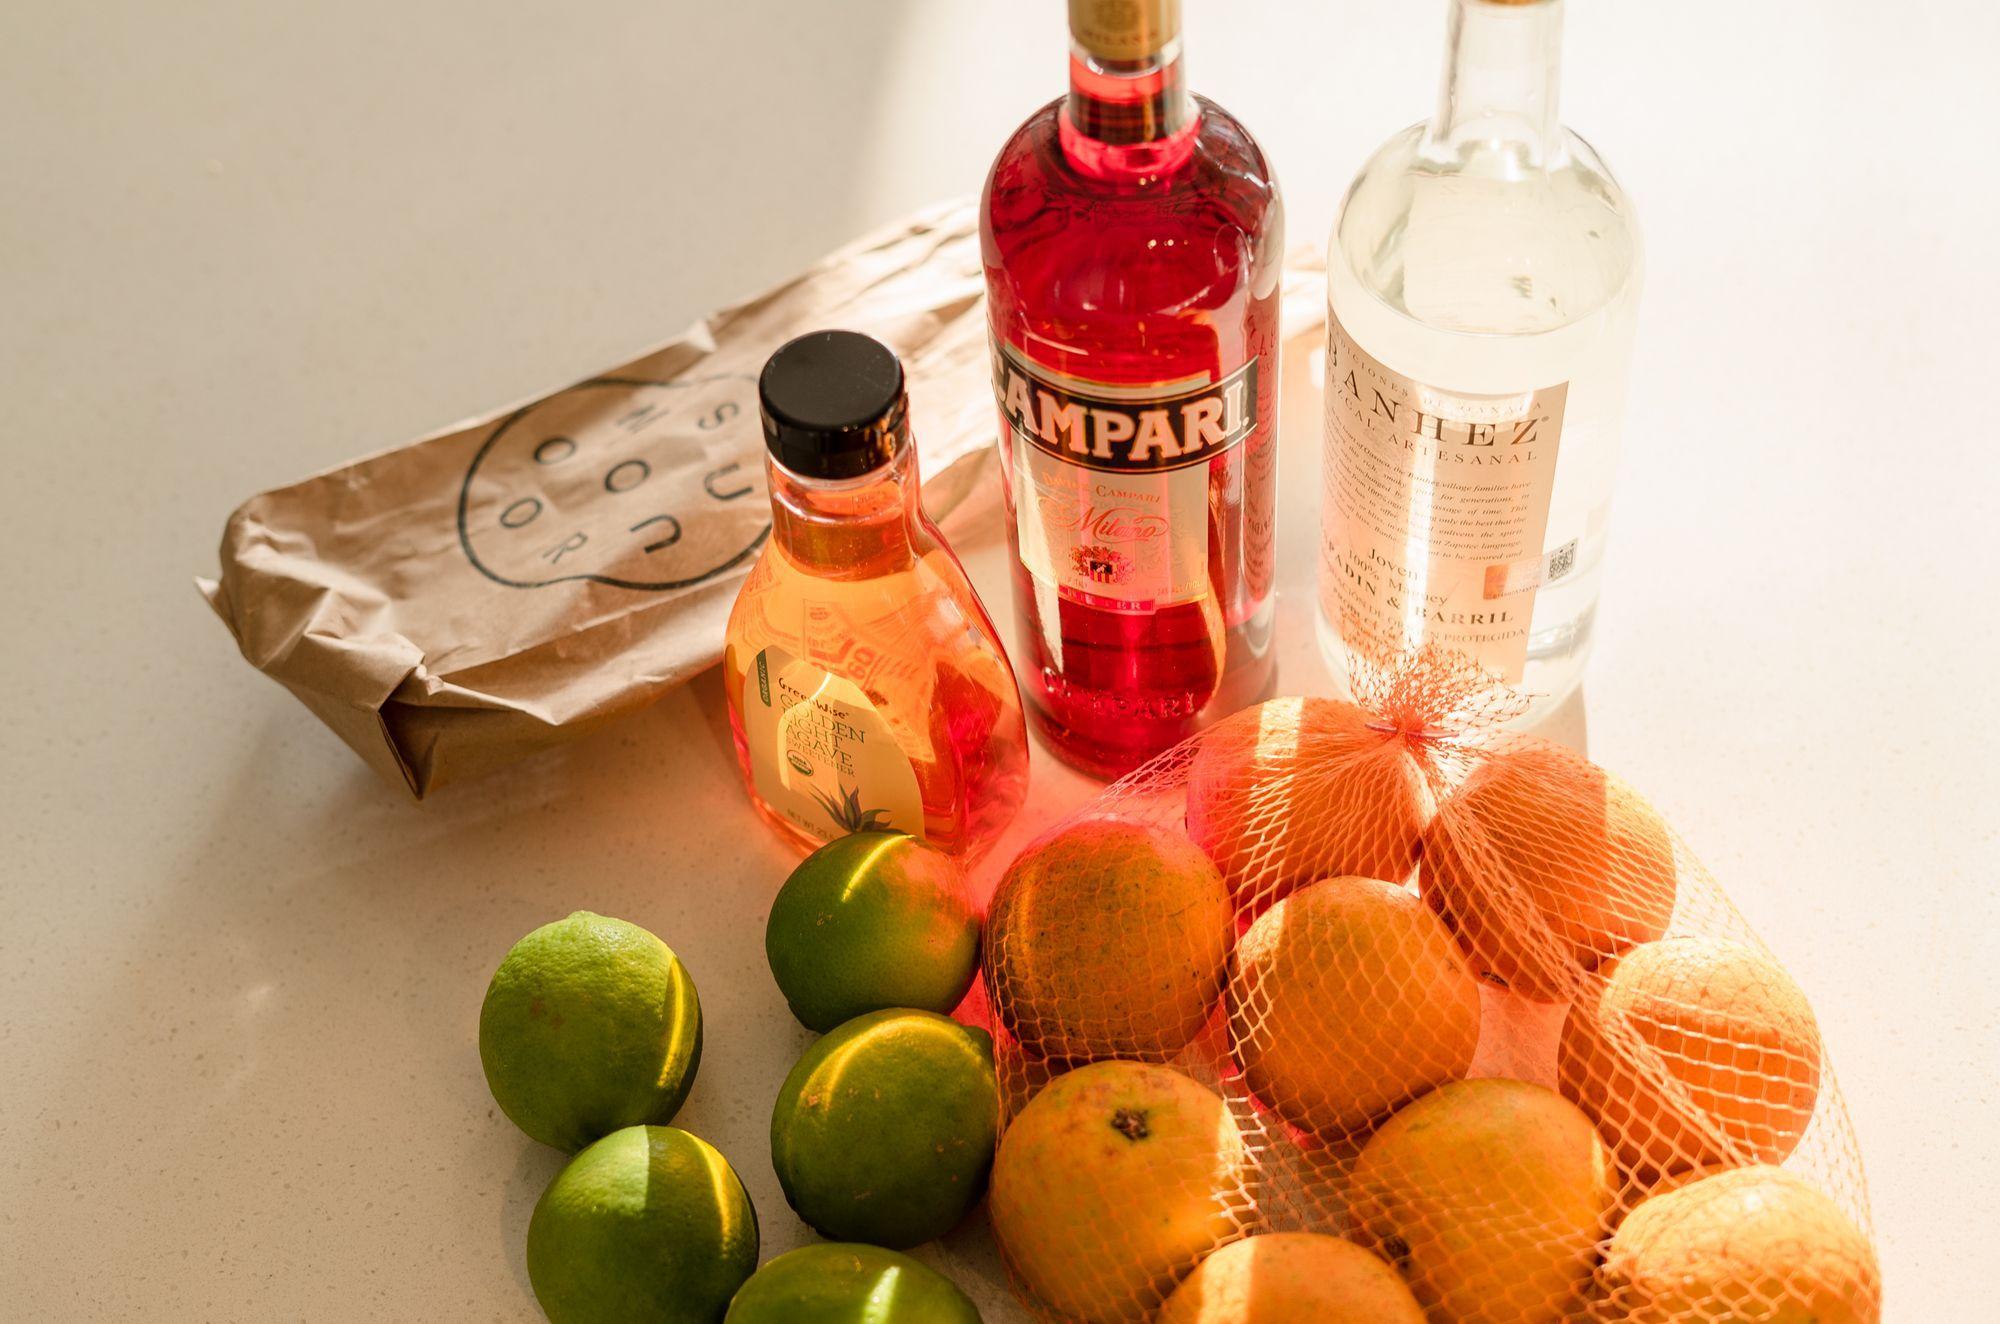 picture of agave syrup, campari, mezcal, limes and oranges.